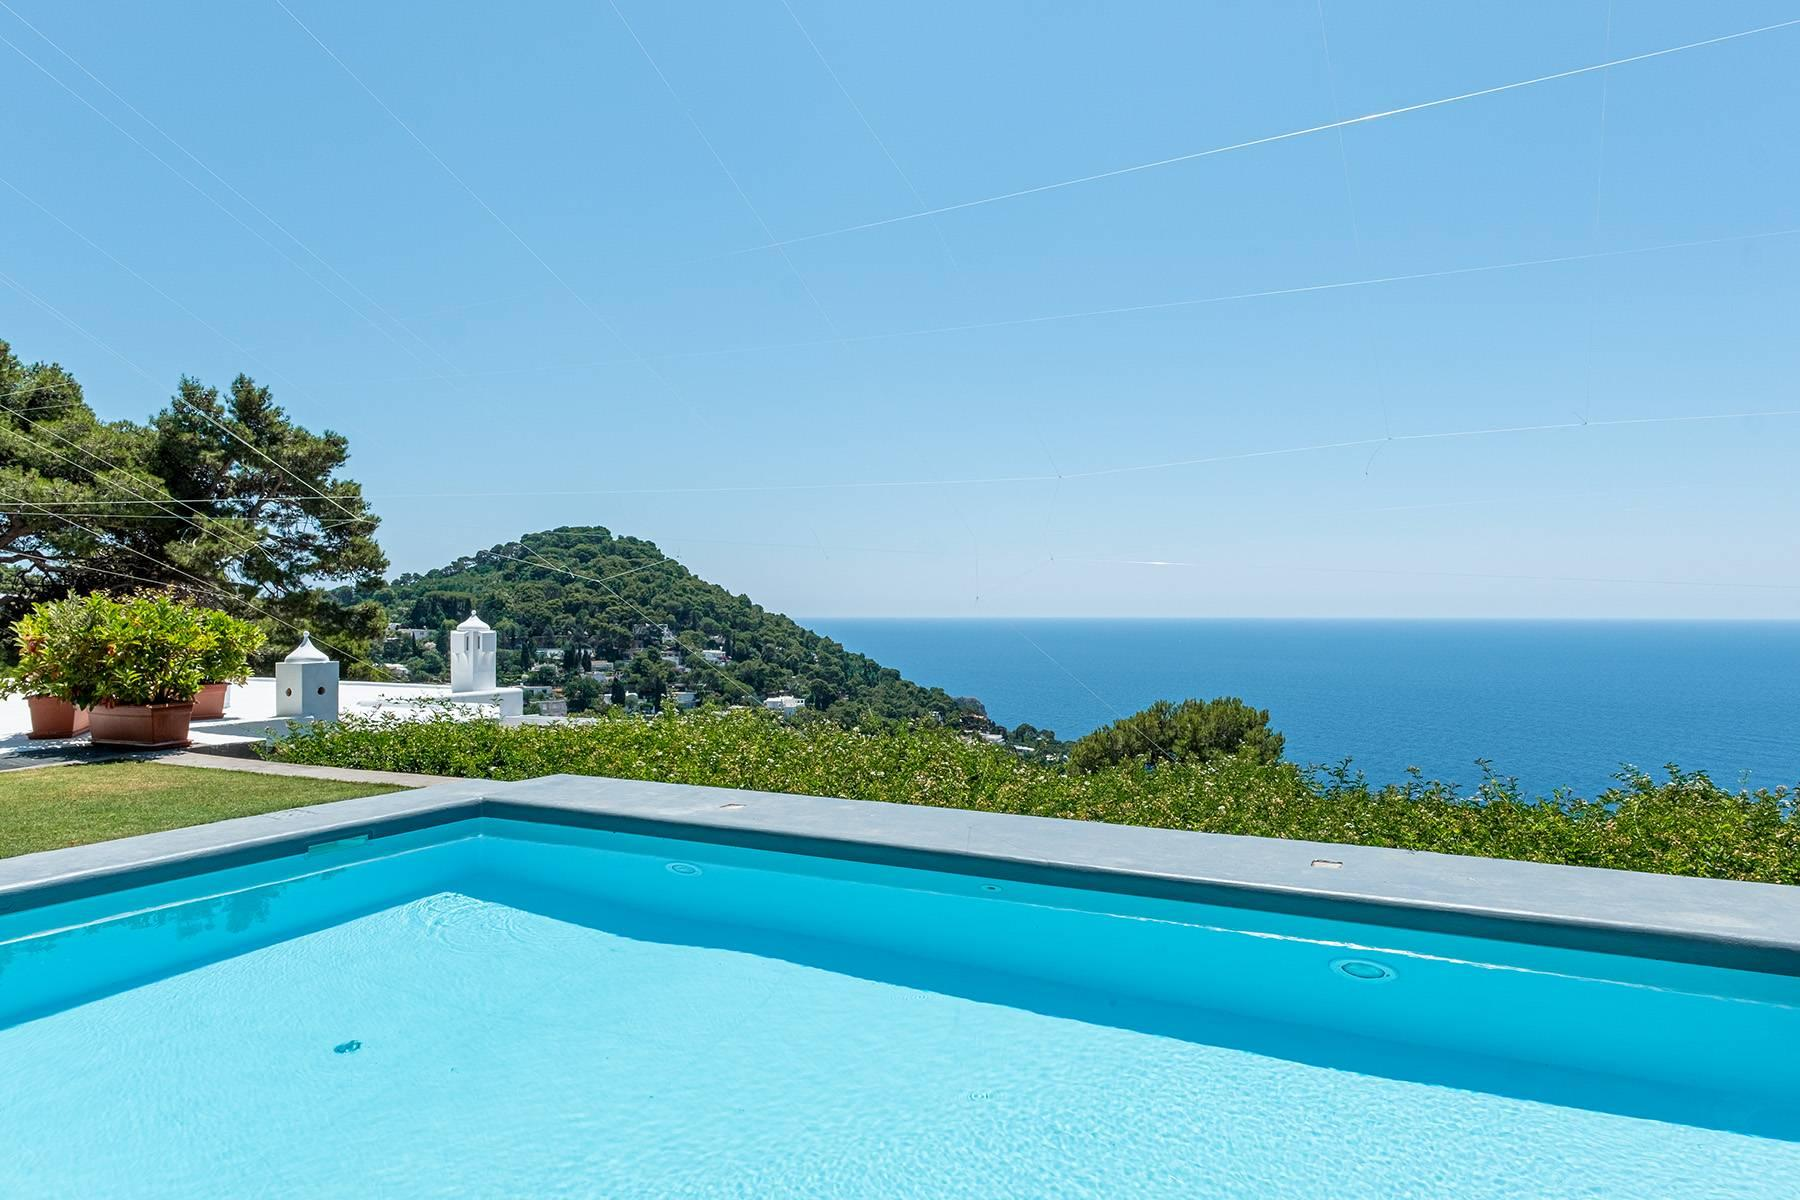 Stunning villa with swimming pool overlooking Capri and the sea - 29